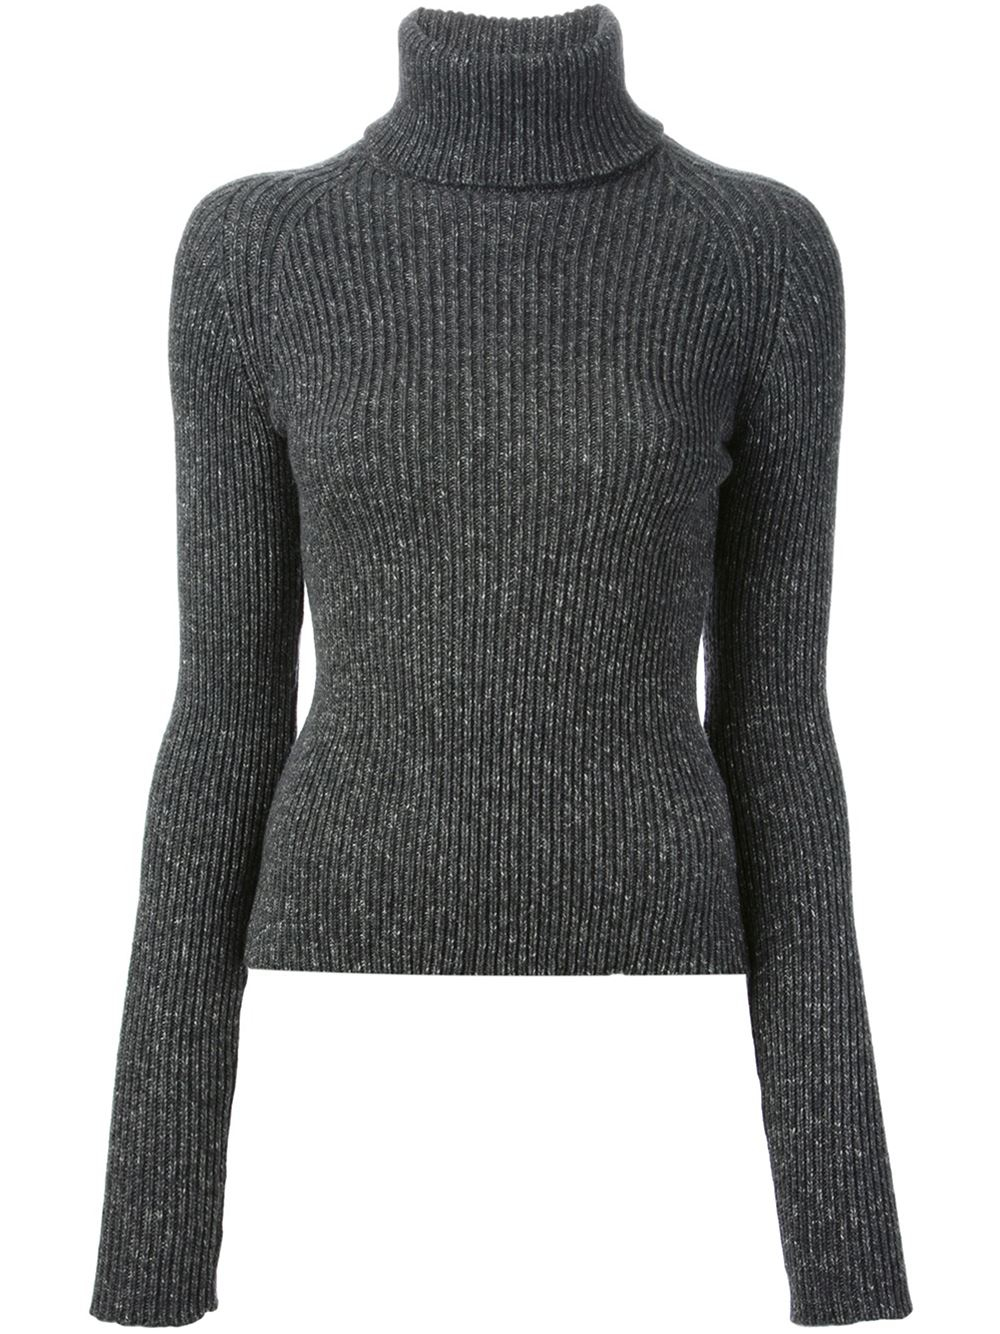 Anthony vaccarello Ribbed Turtleneck Sweater in Gray | Lyst